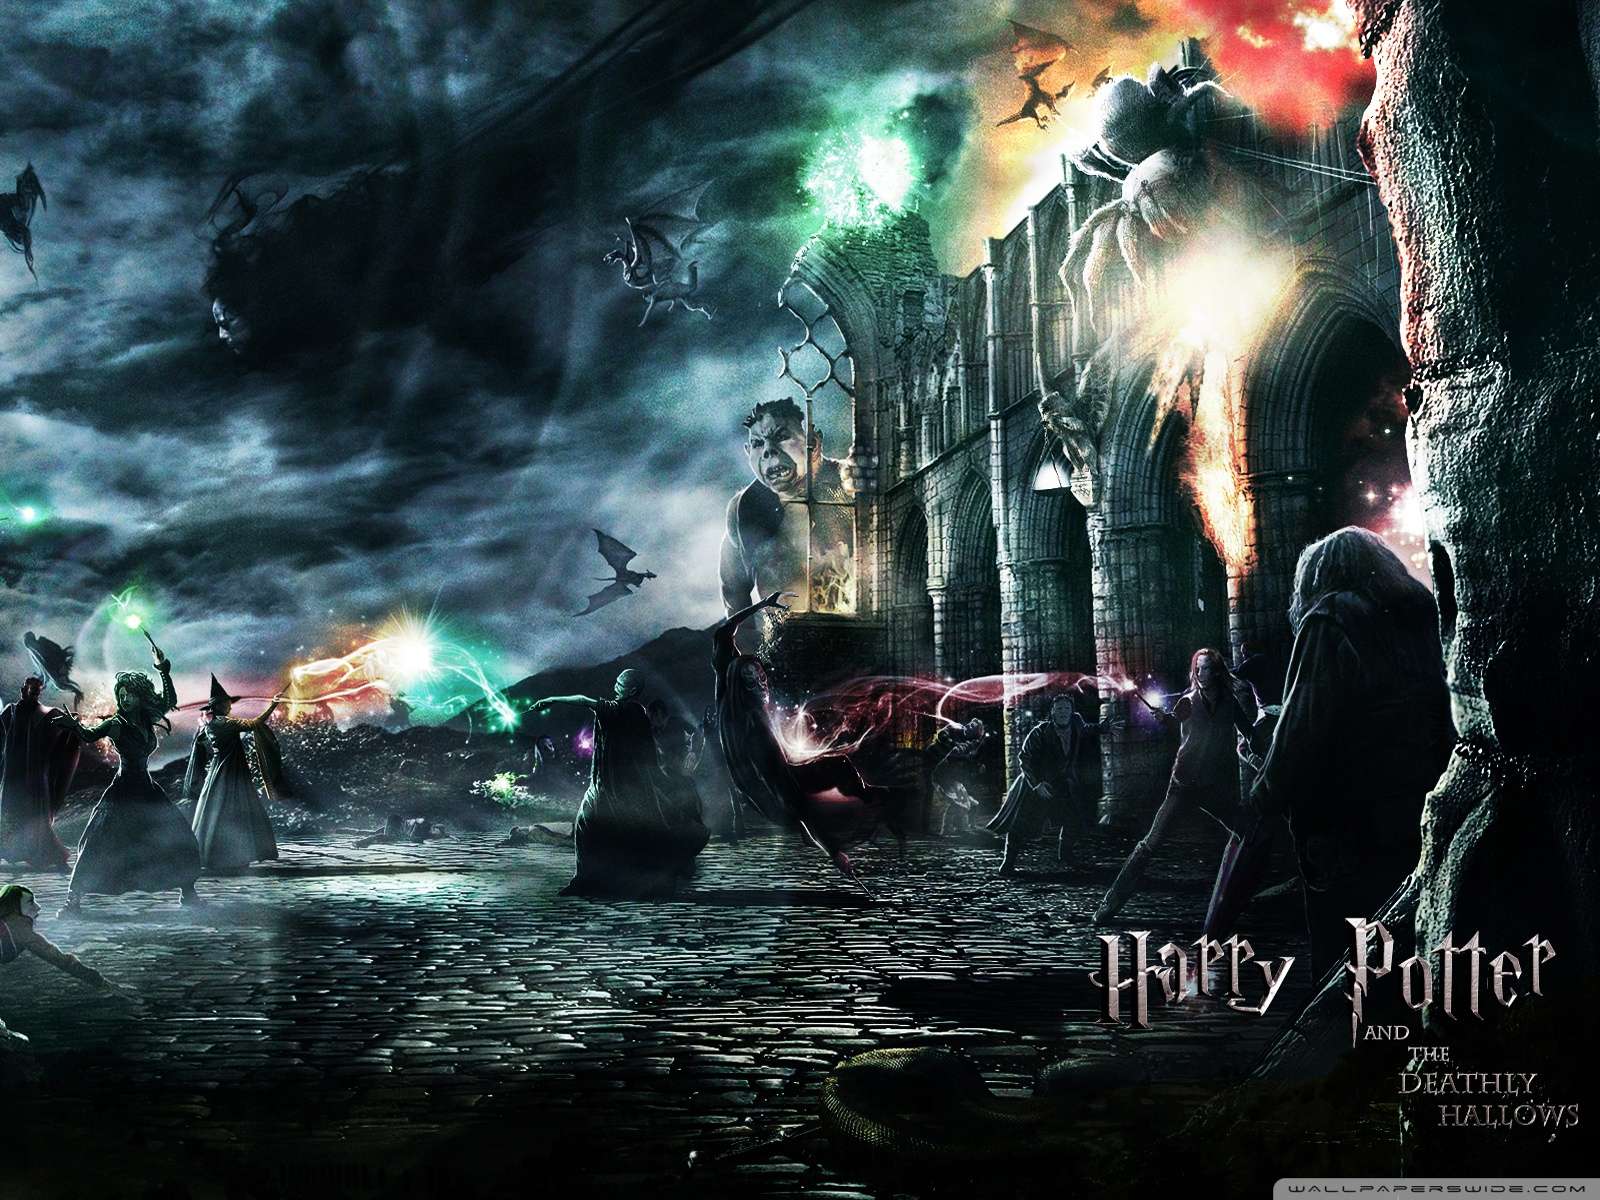 Harry Potter And The Deathly Hallows 4K HD Desktop Wallpaper for 4K Ultra HD TV  Wide  Ultra